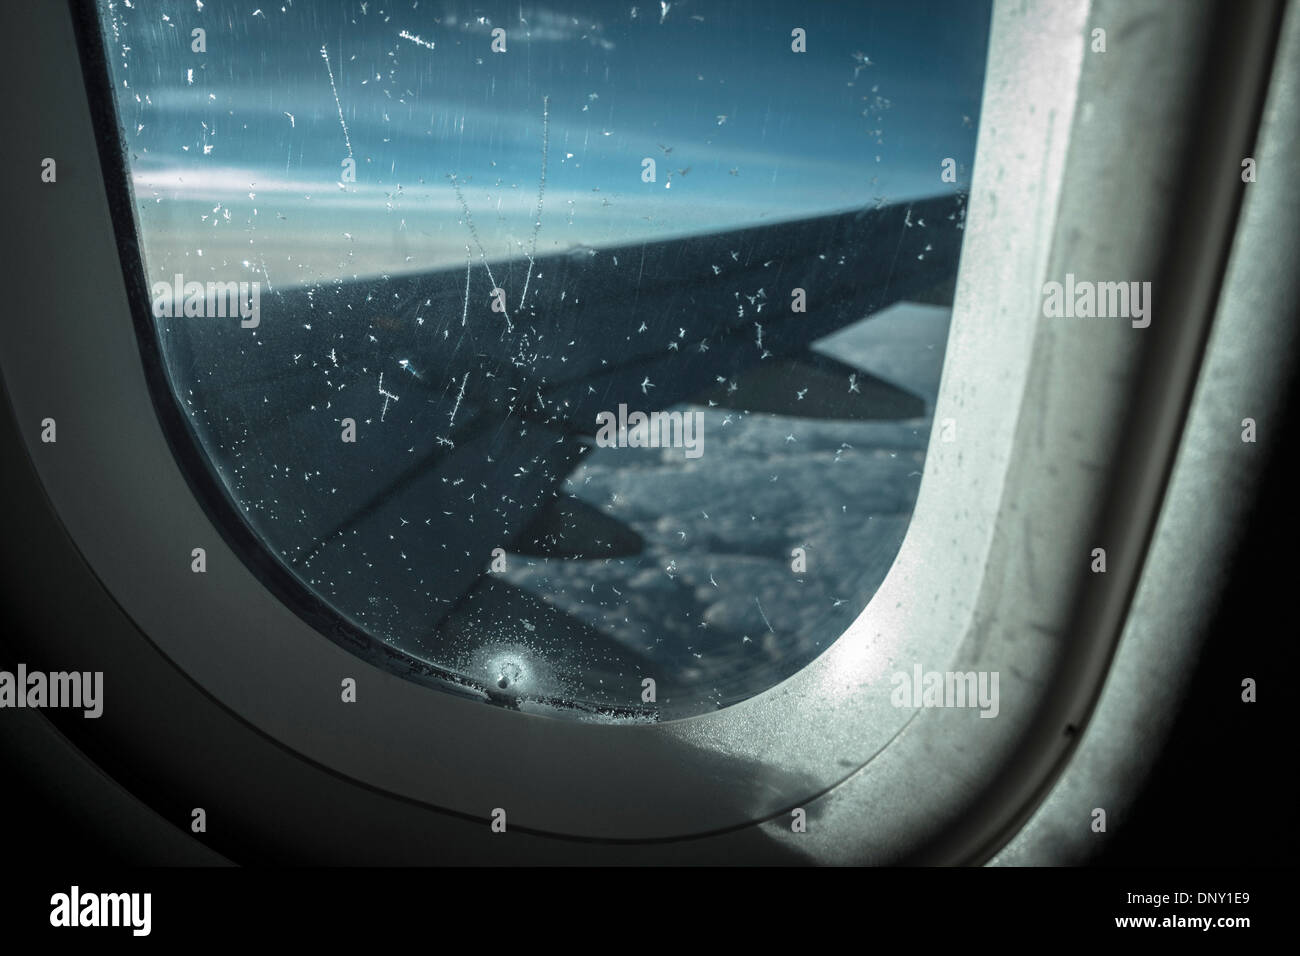 Tremendous View Over Airplane Wing From Window Seat Stock Photo Gmtry Best Dining Table And Chair Ideas Images Gmtryco